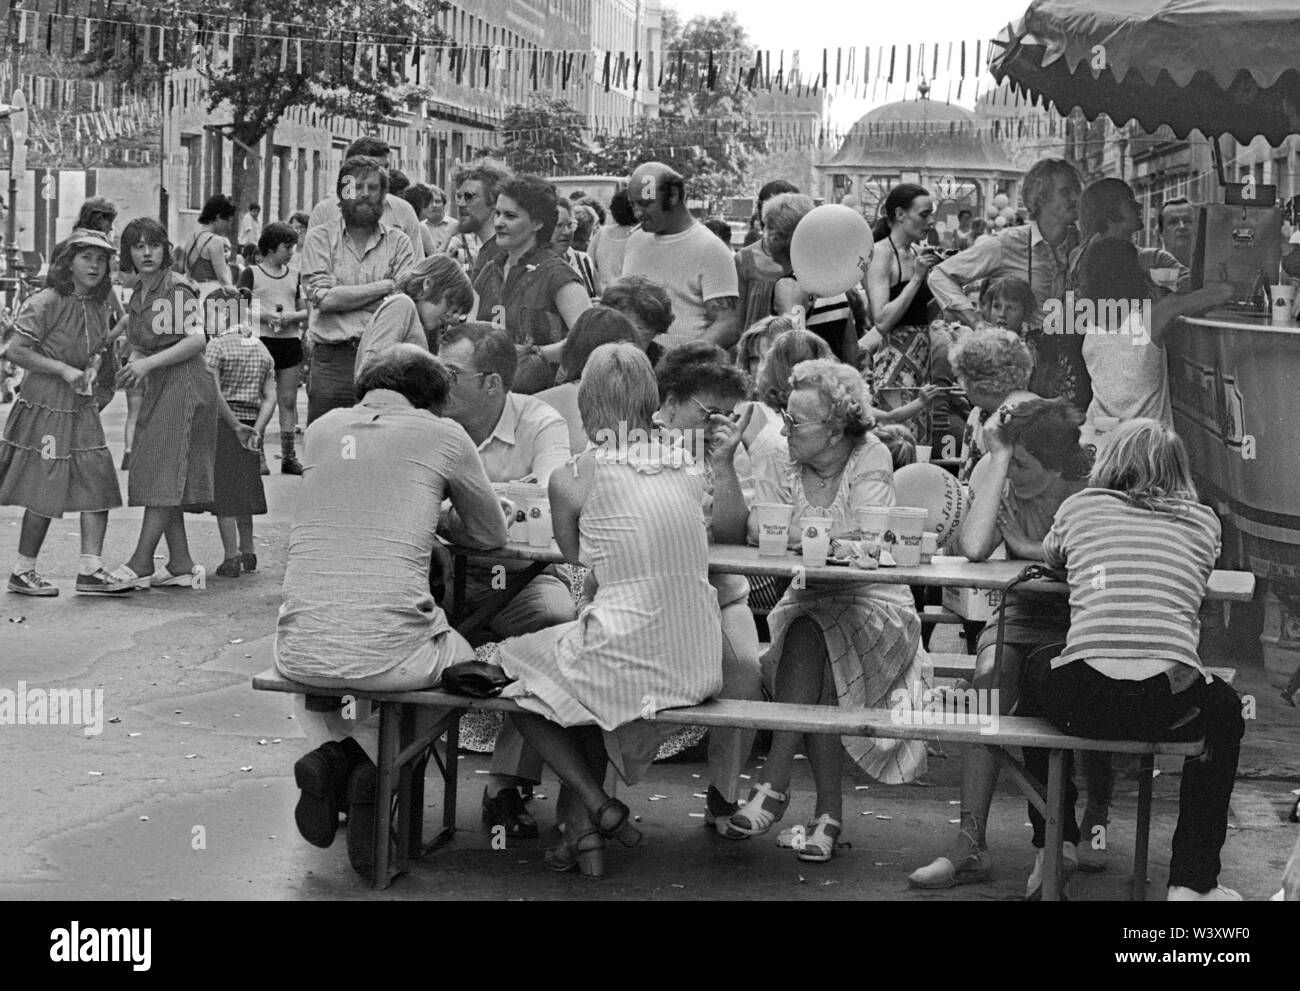 FILED - 18 July 2019, Germany (German), Berlin: Berlin-Bezirke/Kreuzberg/5.6.1982 Festival in the Cuvrystrasse, among others organized by the squatters in the street. Resident main organizer was the Tabor Church Parish with Reverend Roth. Occasion: the kindergarten of the community is 100 years old. Tabor Church is in Wrangelstrasse, just around the corner. Pastor Roth was damasl VErmittler between the squatters and the Senate // Dance/Housing/Squatting/Districts Berlin/Kreuzberg/5.6.1982 Fest in der Cuvrystrasse, among others organized by the squatters in the street and by the P - Stock Image